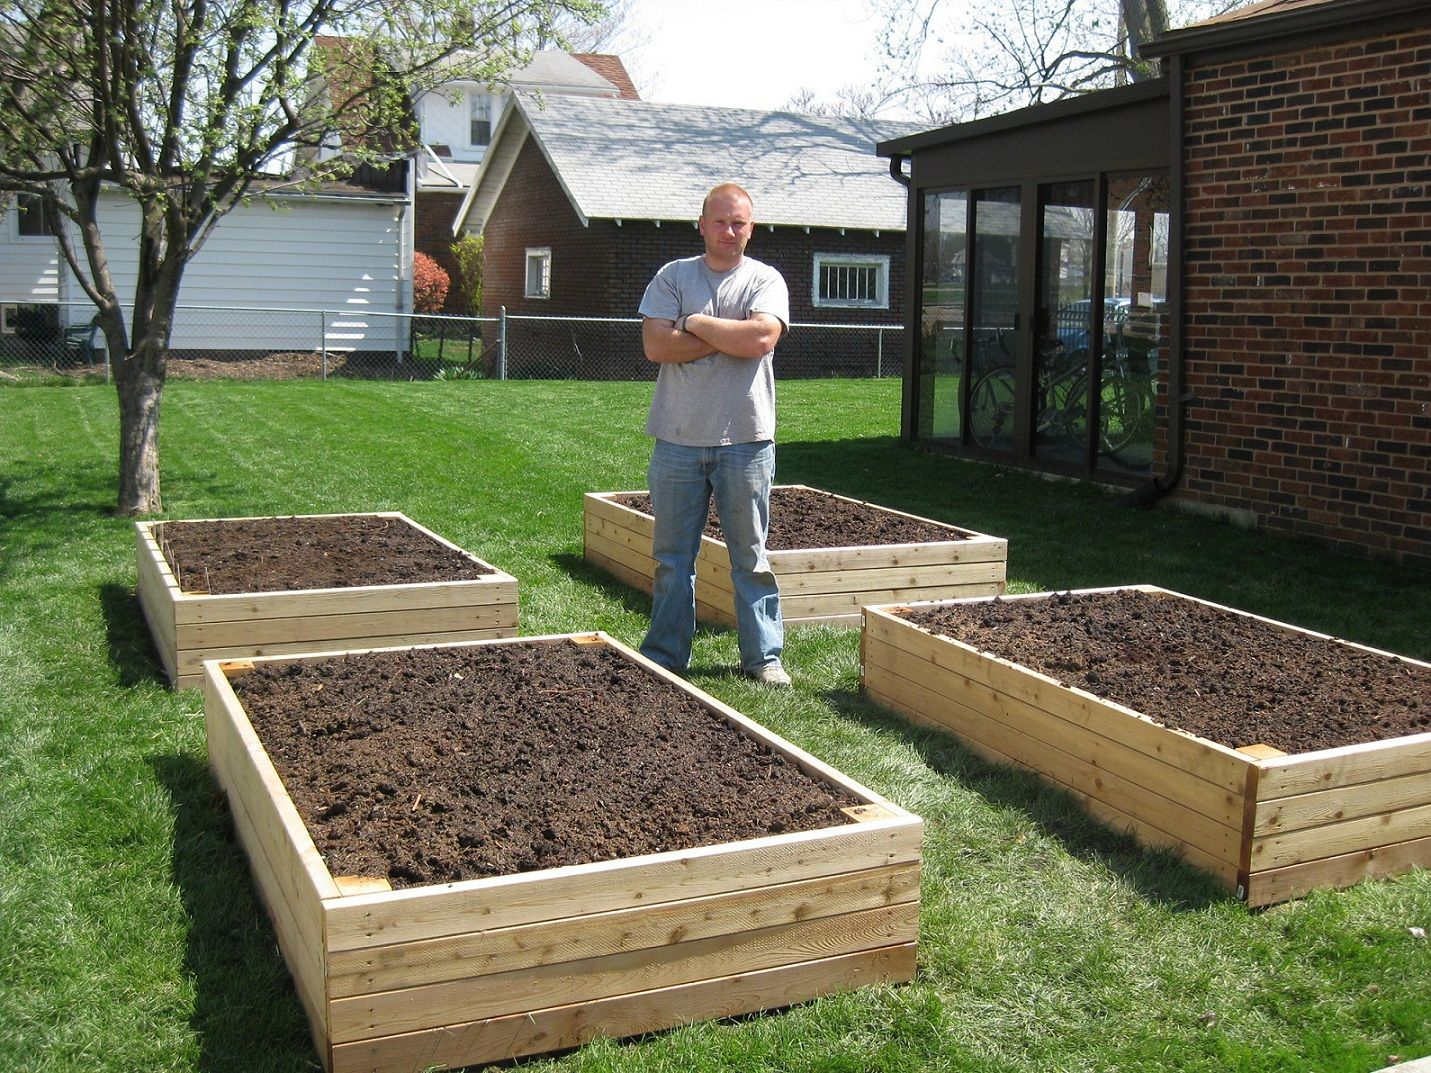 pallet vegetable garden box ideas - Garden Box Design Ideas